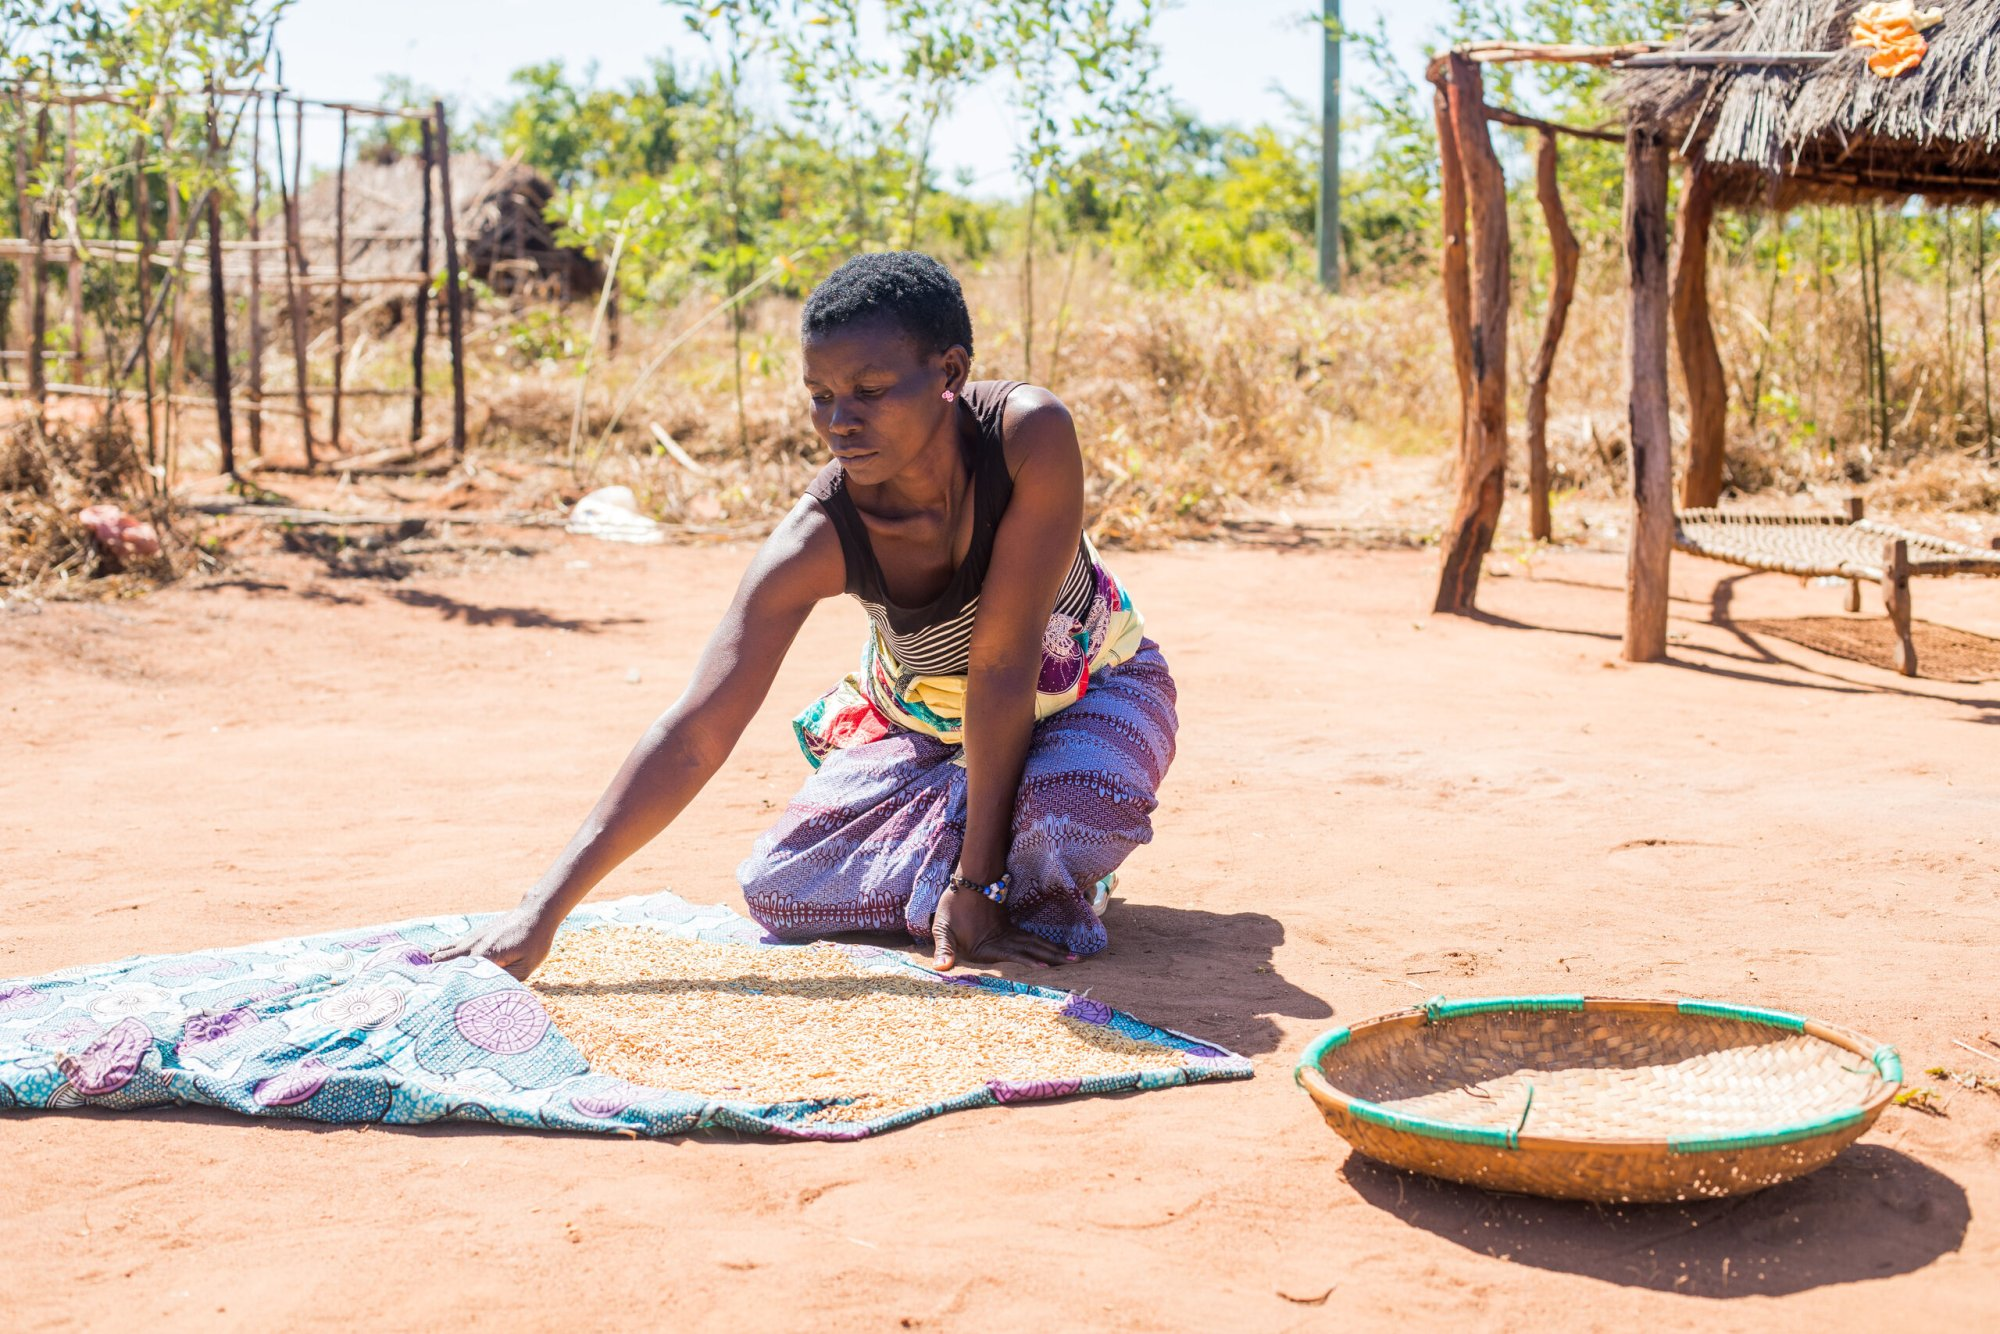 Mozambique: A woman spreads out rice to dry outside of her home in northern Mozambique. More Info